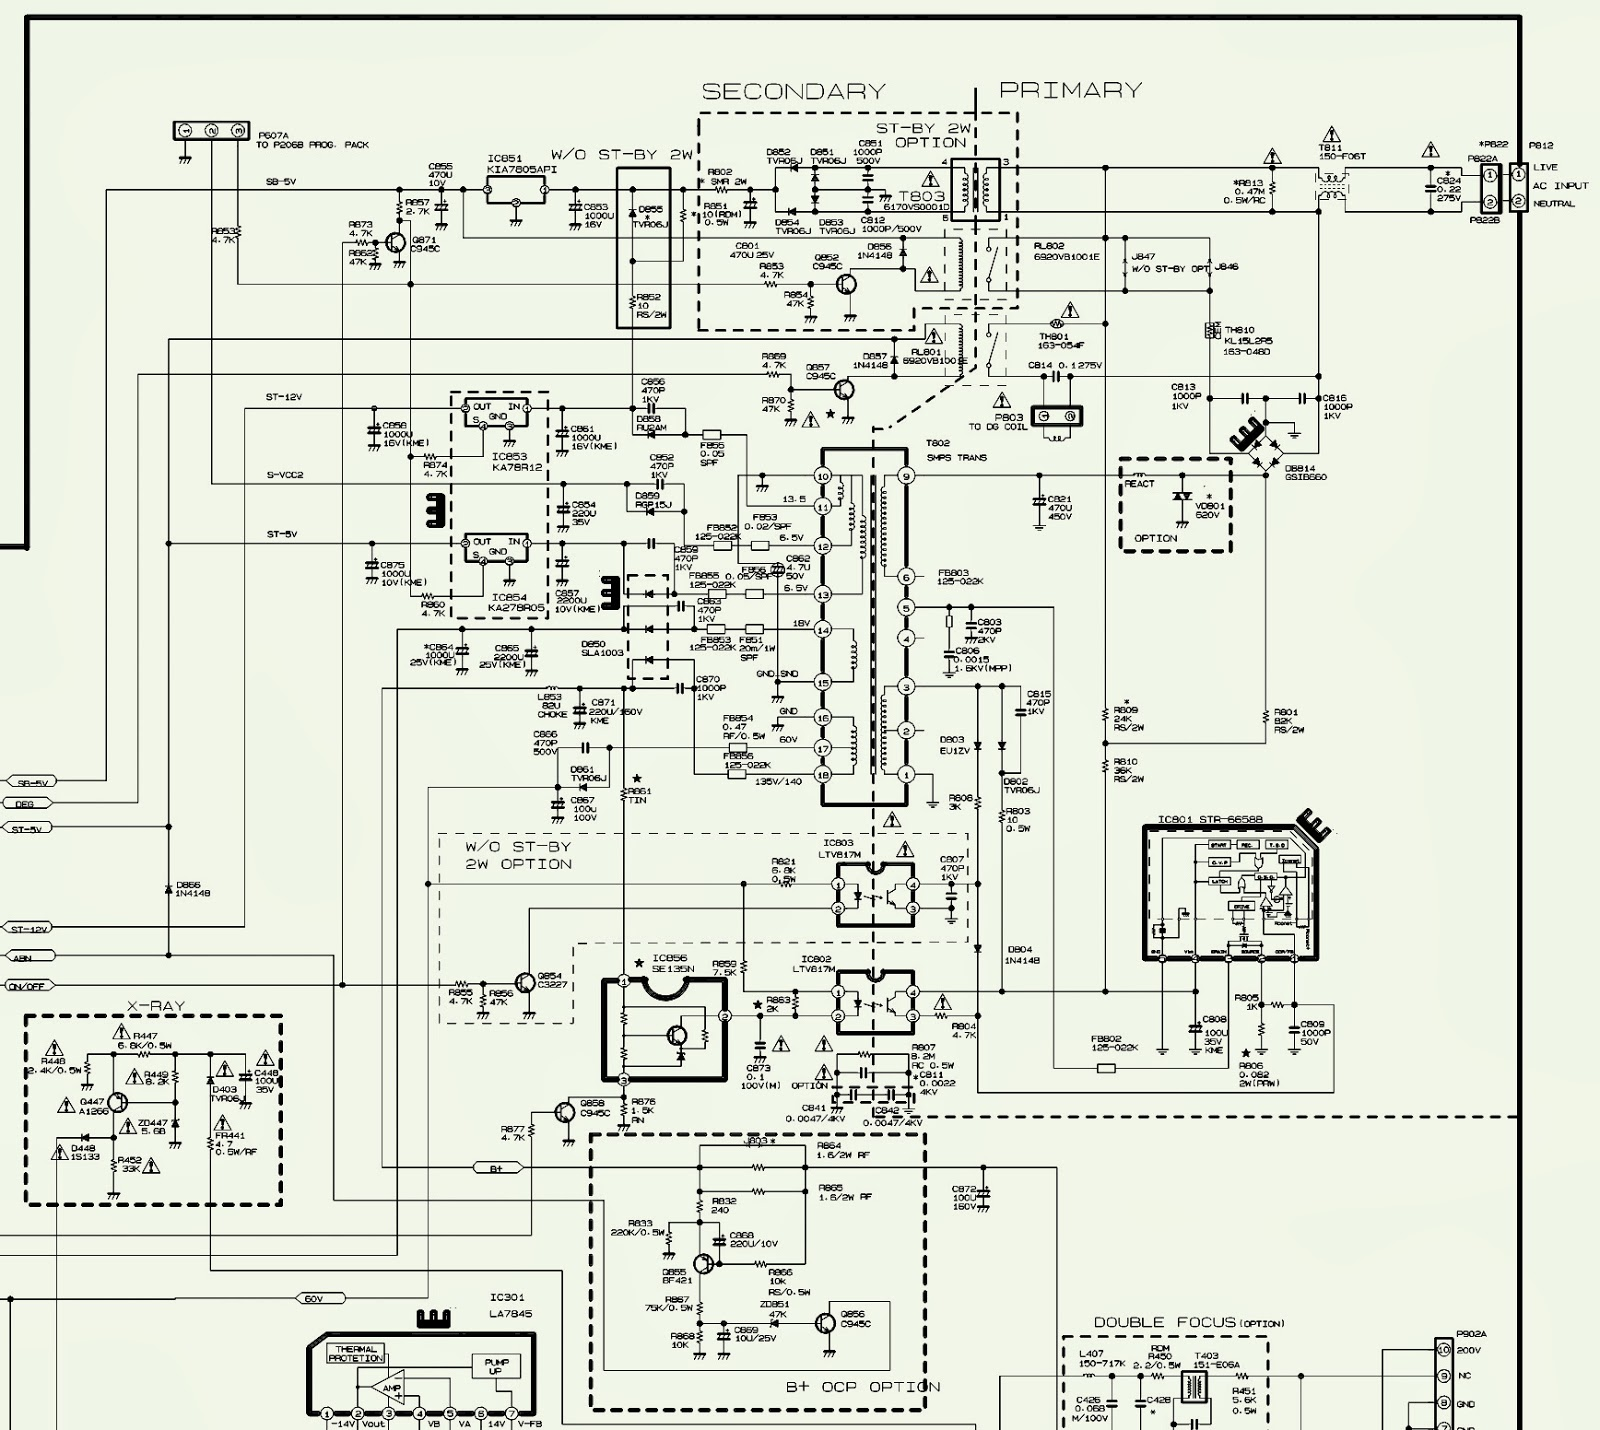 medium resolution of wiring diagram lg tv wiring diagram blogs lg tv lm6700 wiring diagram